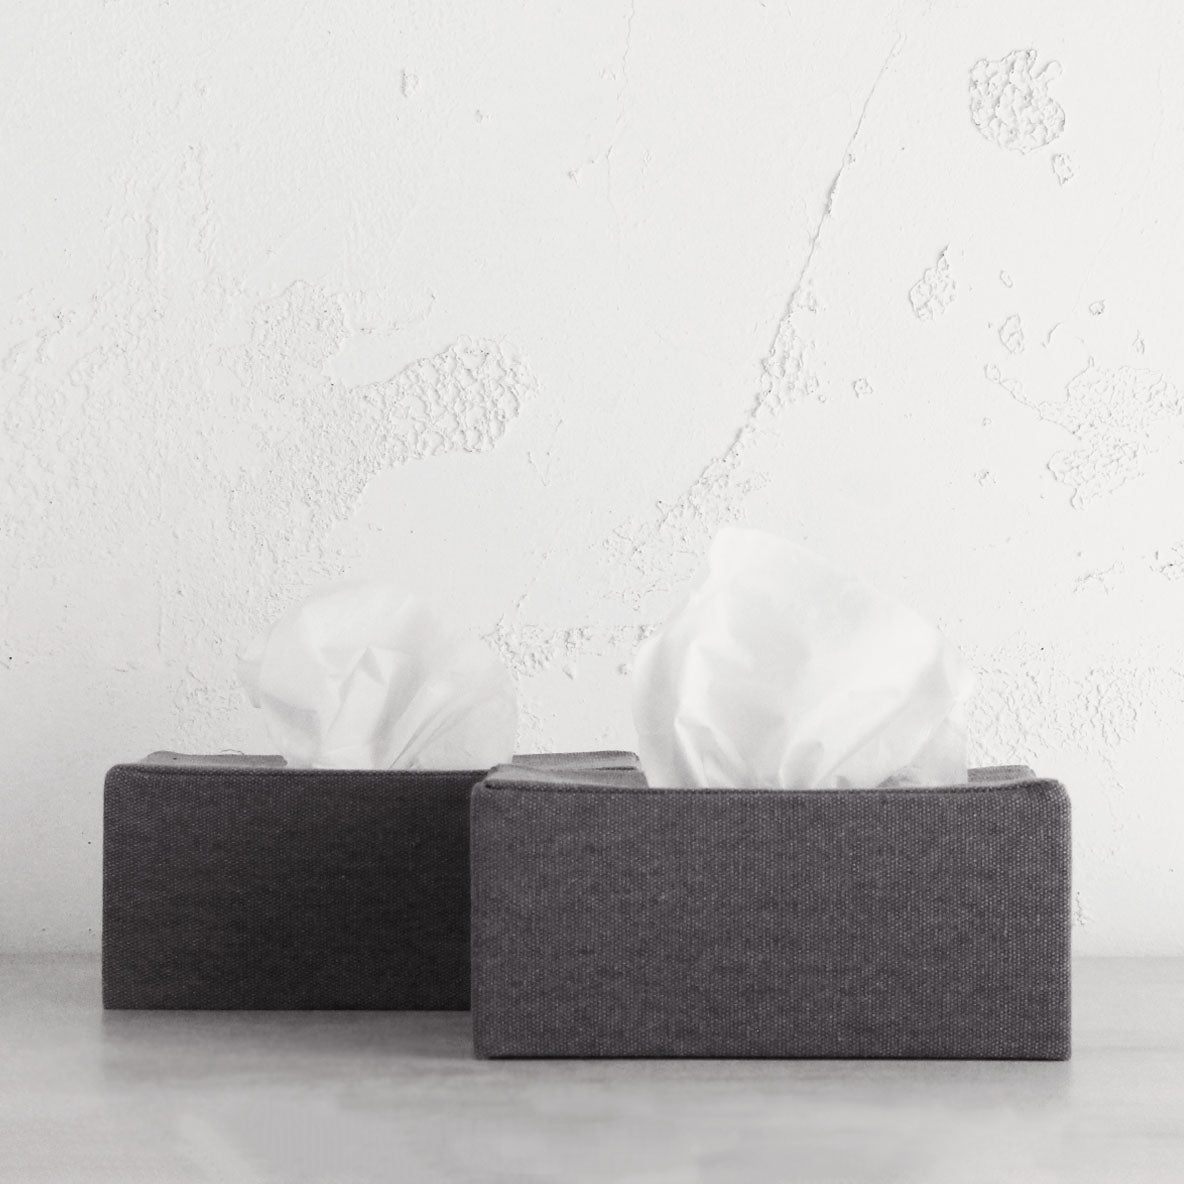 TELA CANVAS TISSUE BOX COVERS  |  2 x RECTANGLE COVERS  |  GREY LINEN LOOK